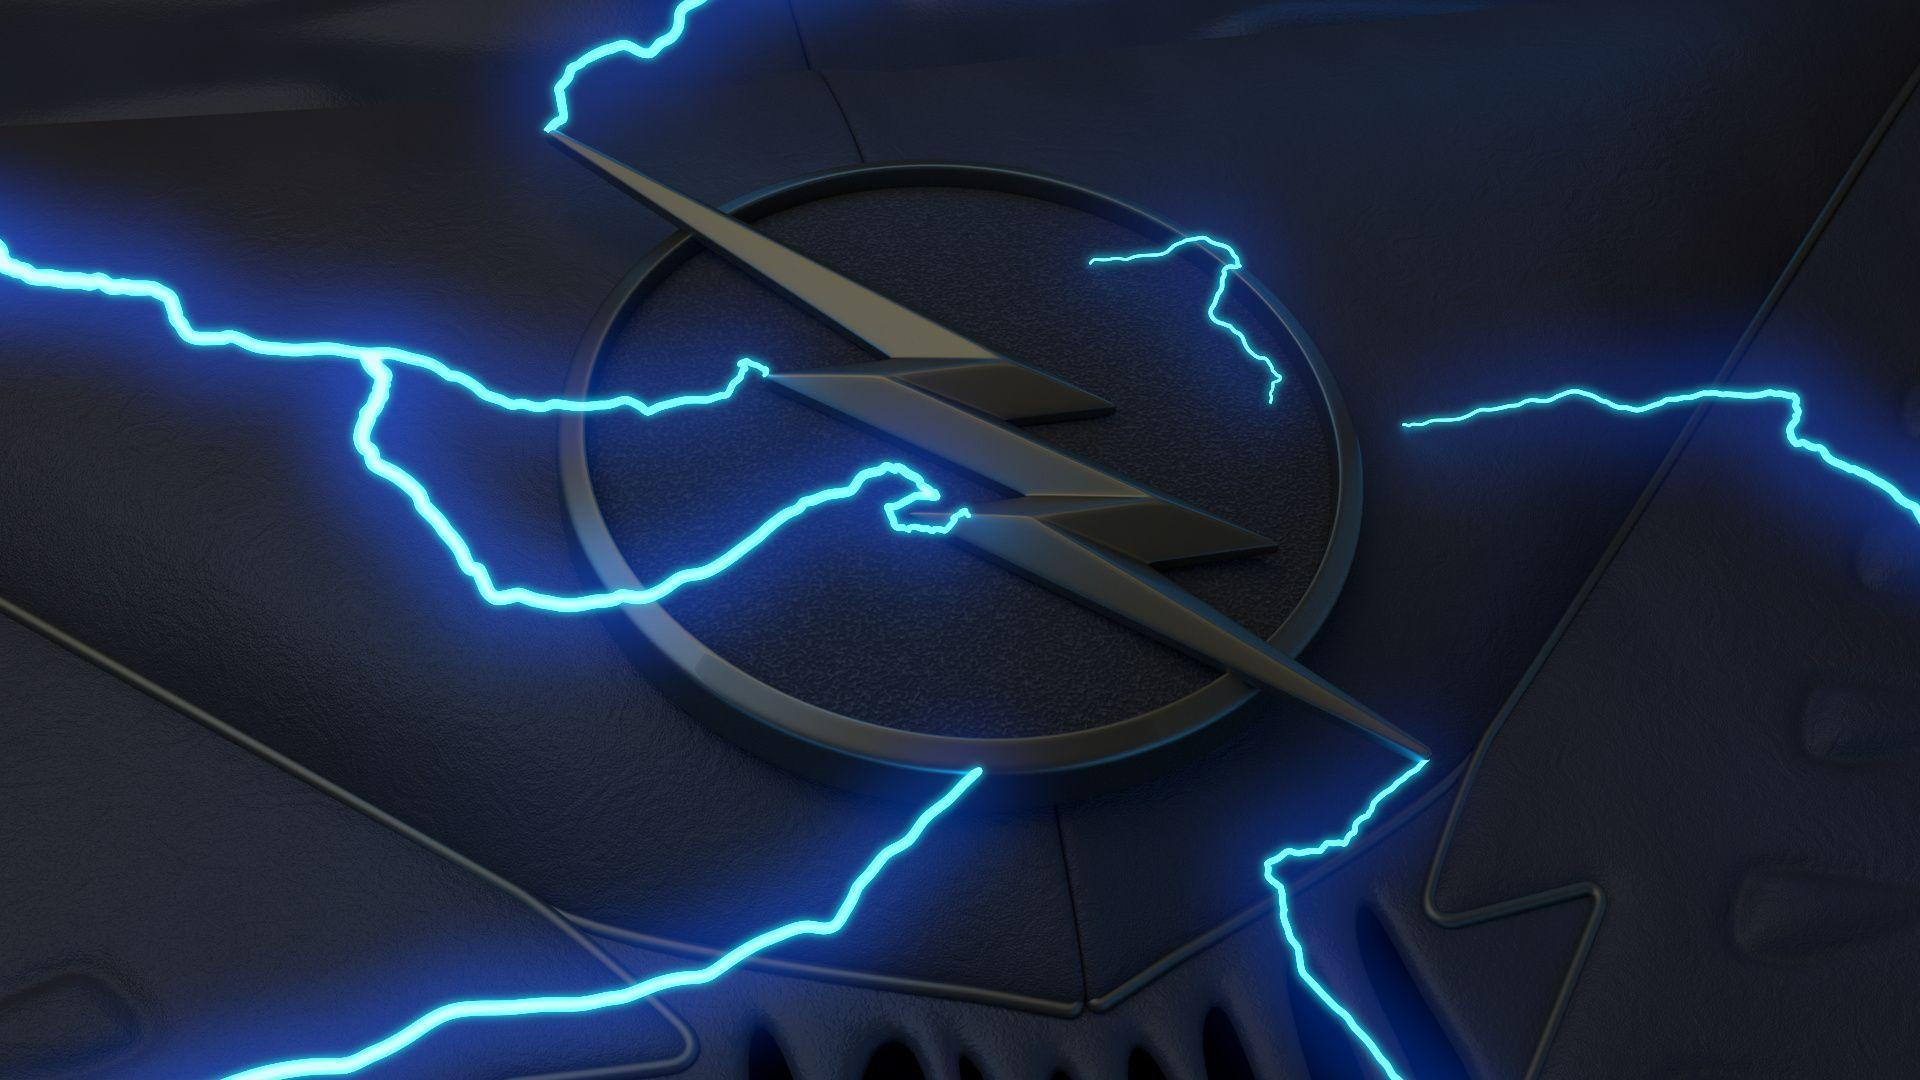 zoom and flash lego wallpaper - photo #3